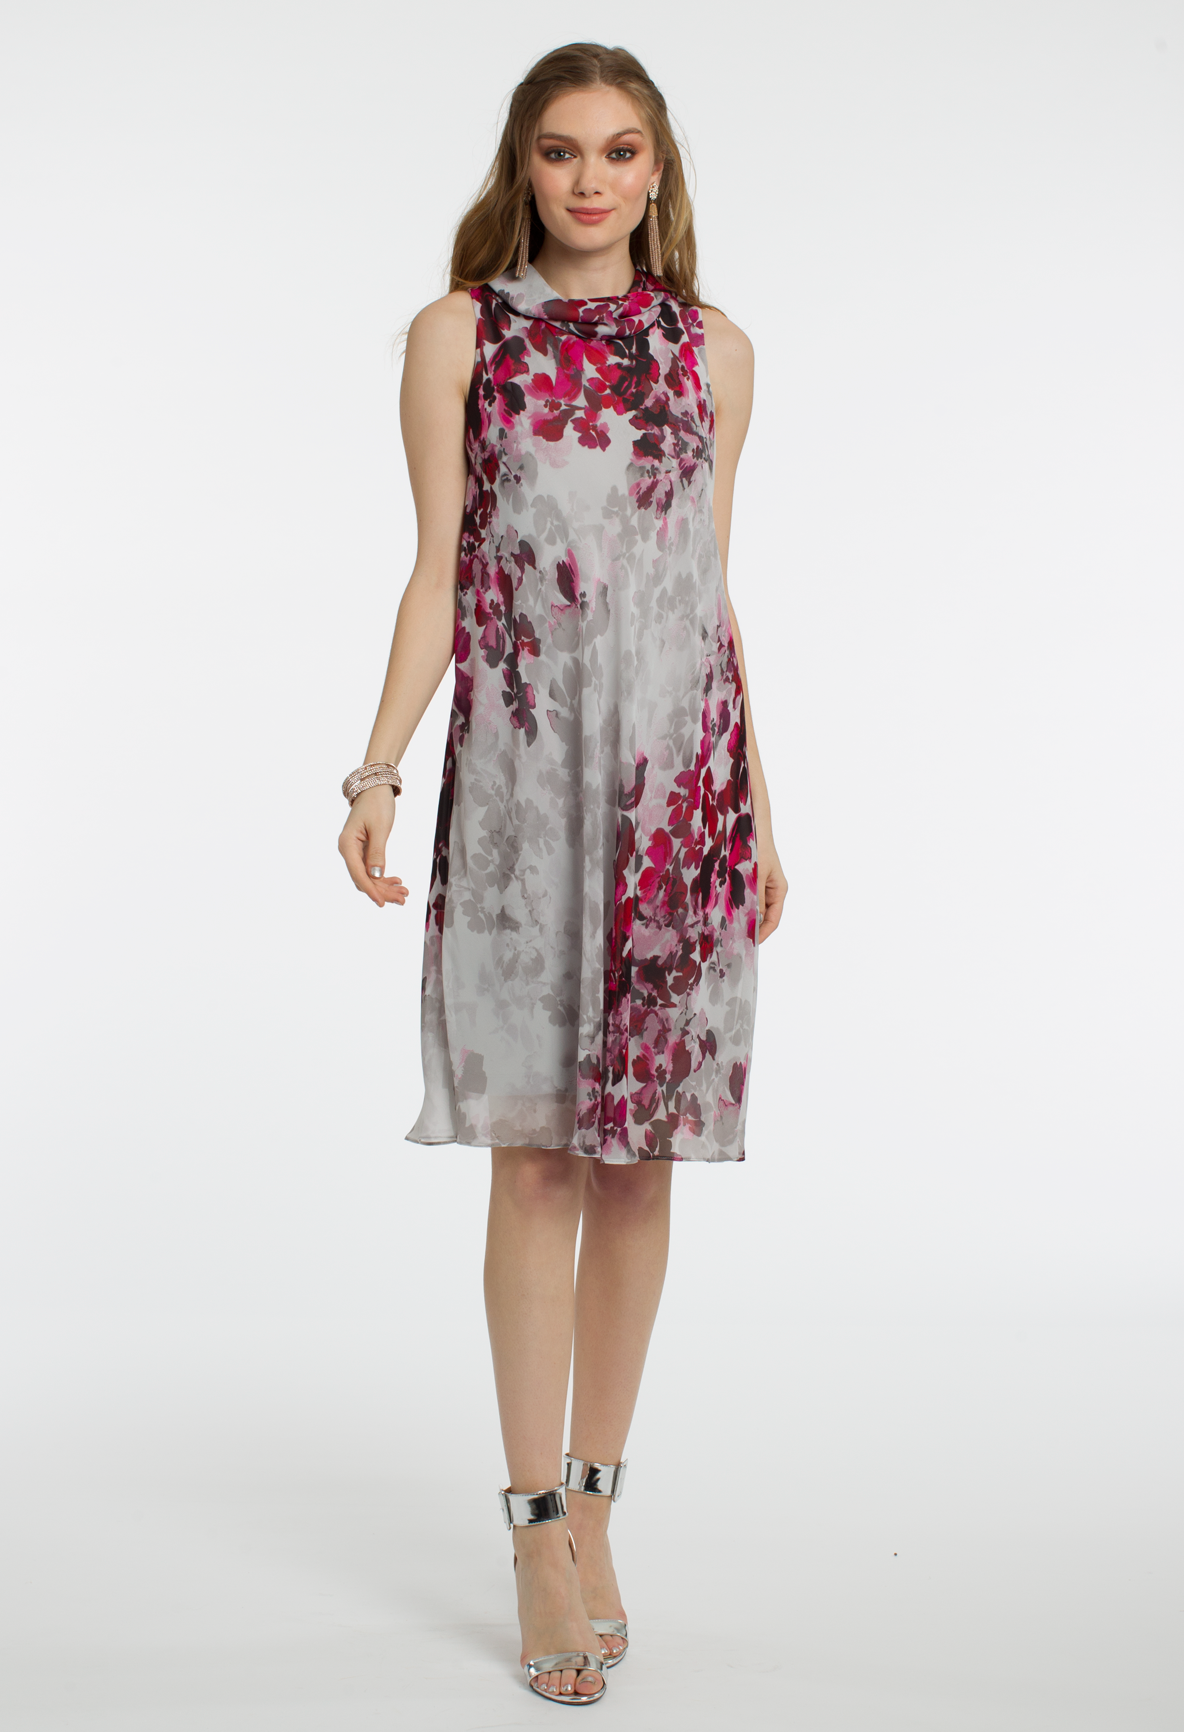 This chiffon flowy kneelength cocktail dress can be